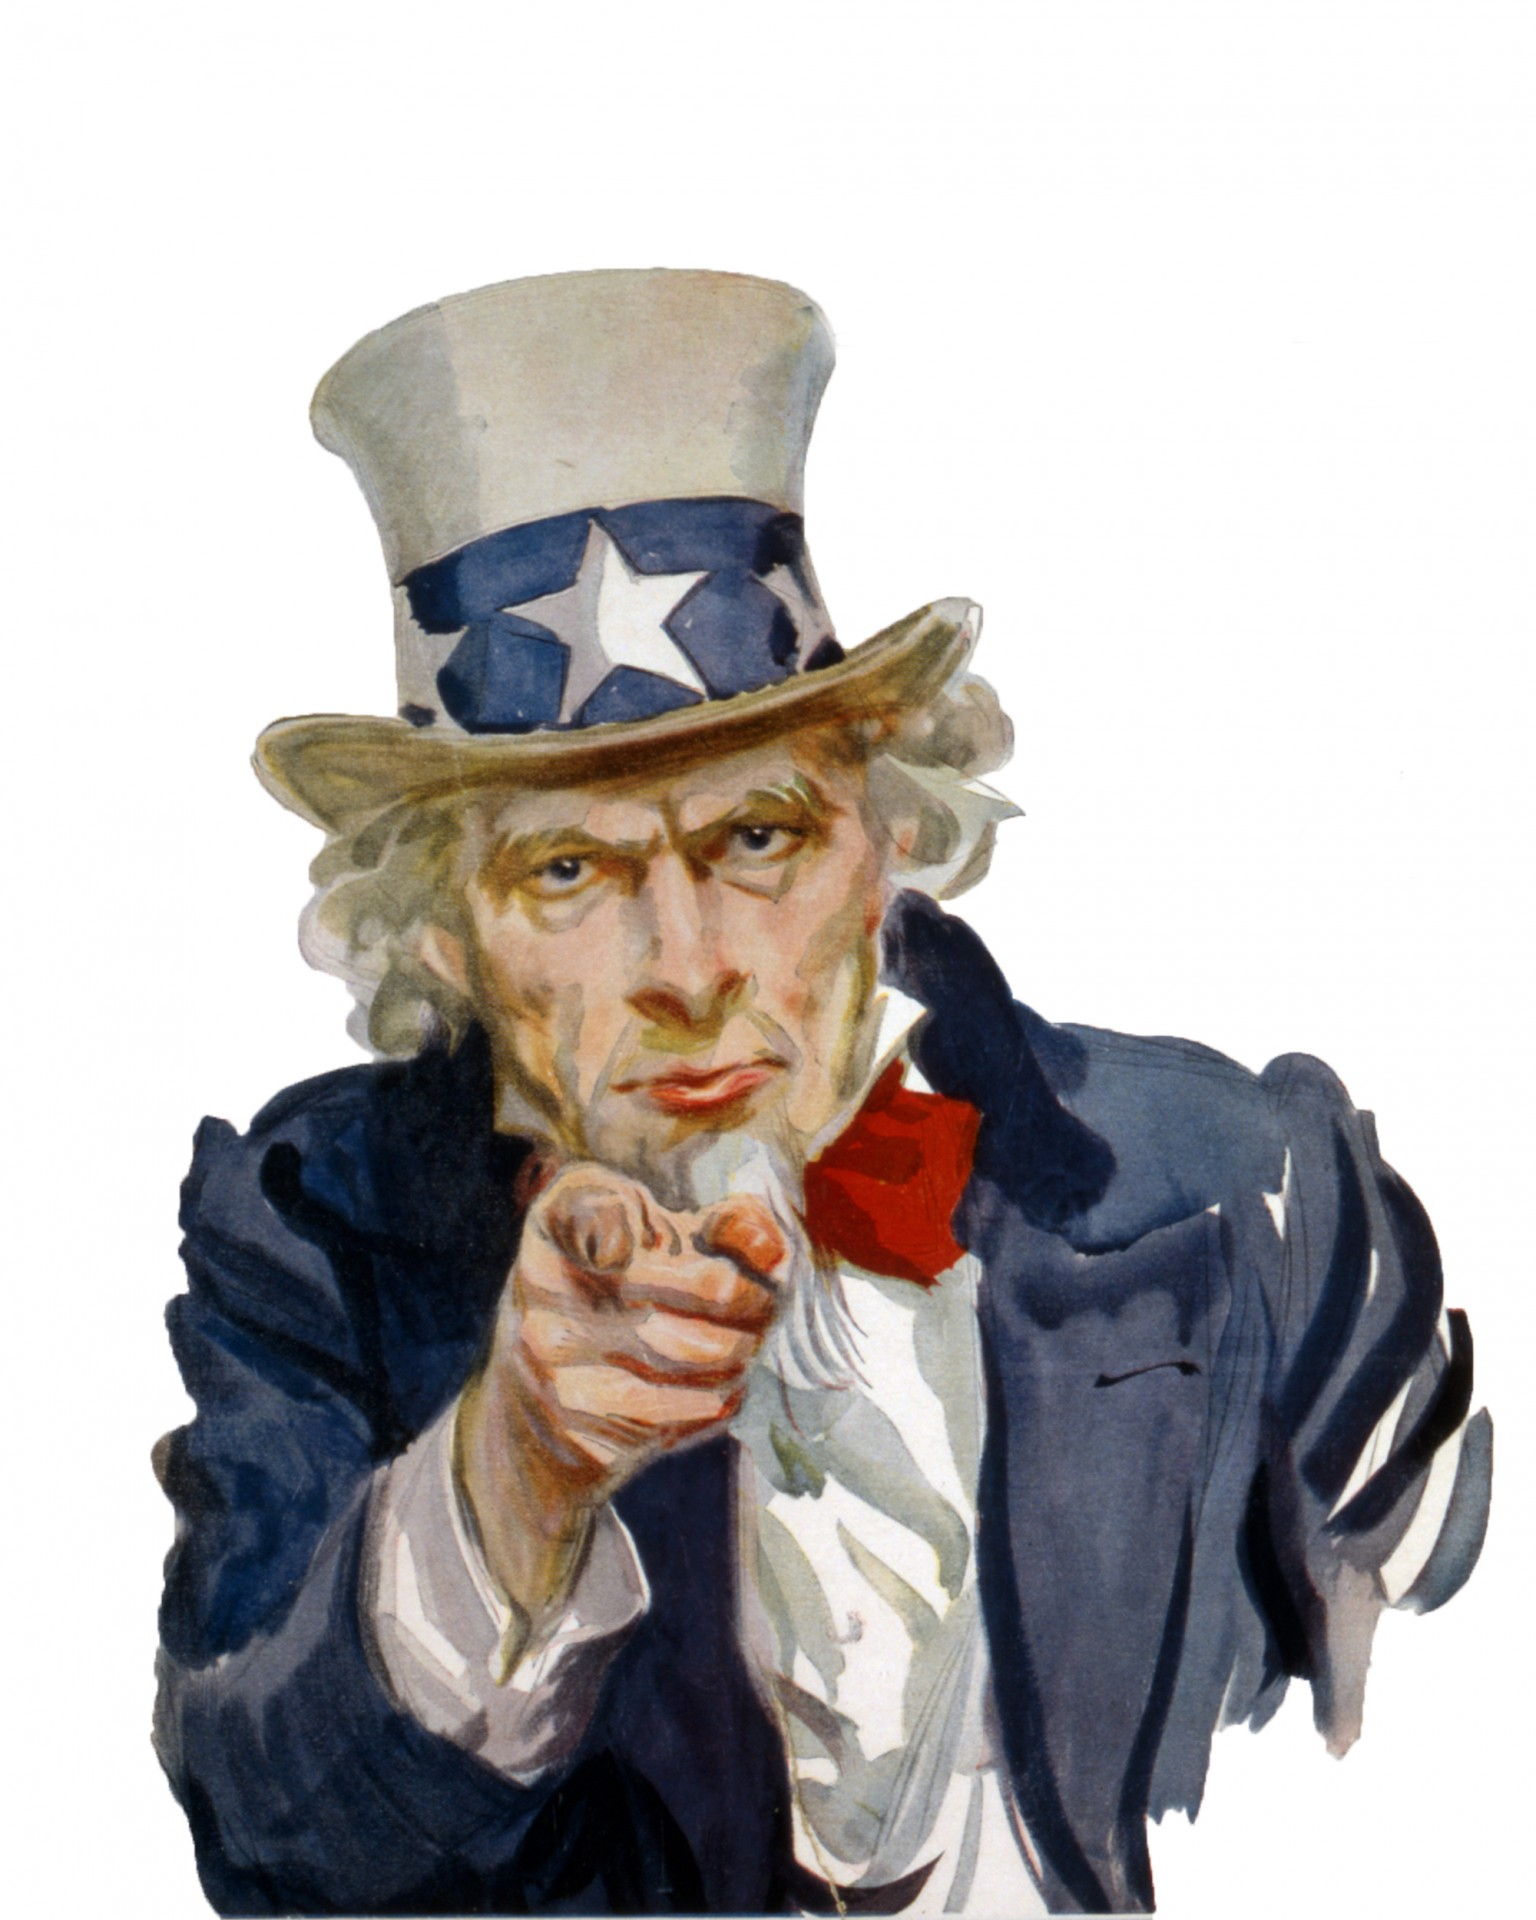 uncle sam pointing as external link in legal blog